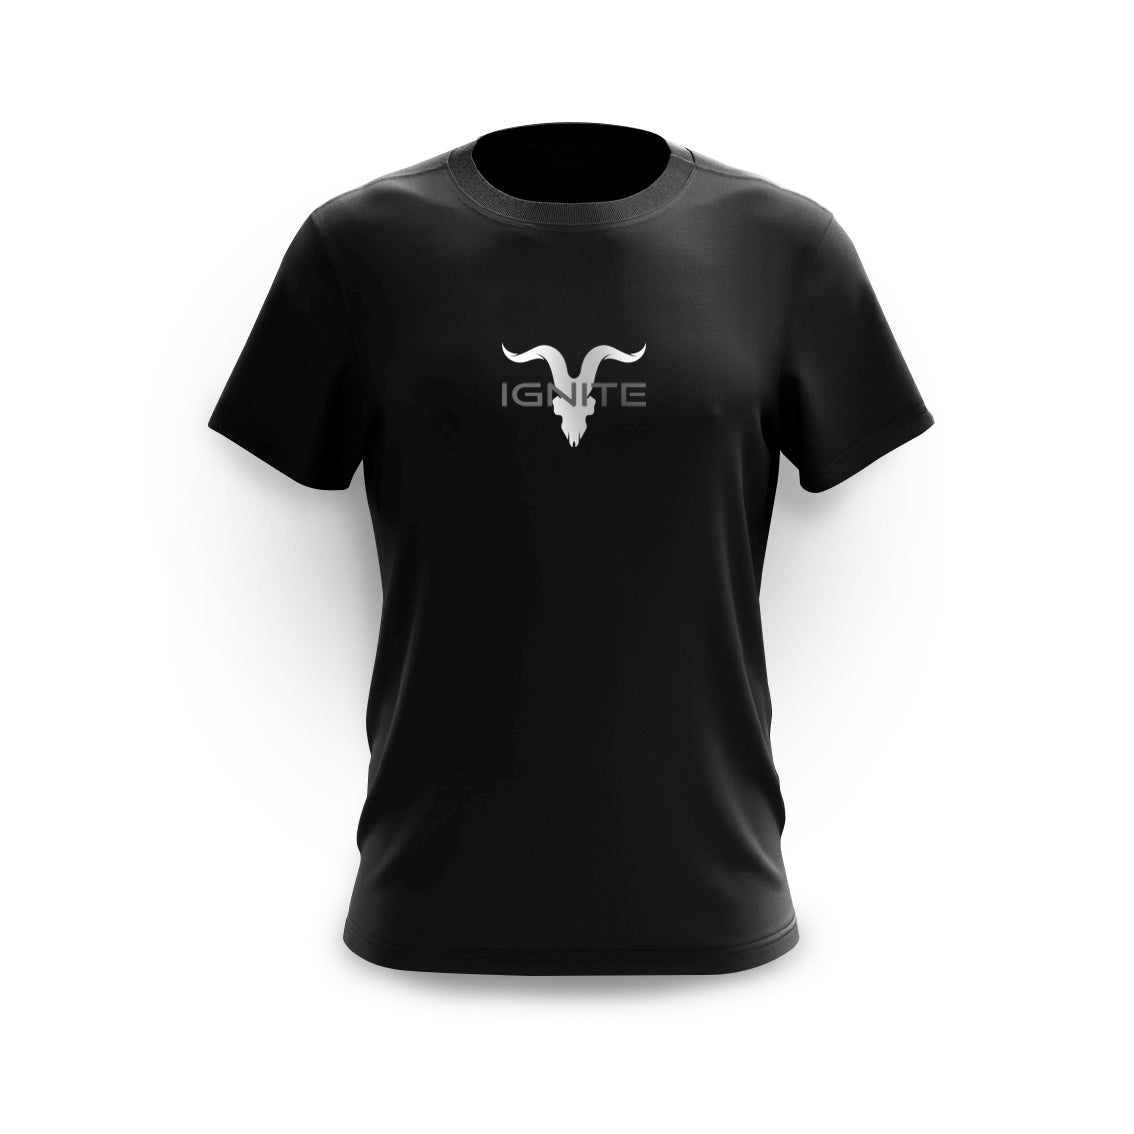 Men's Black Classic Logo Tee - ignite-merch